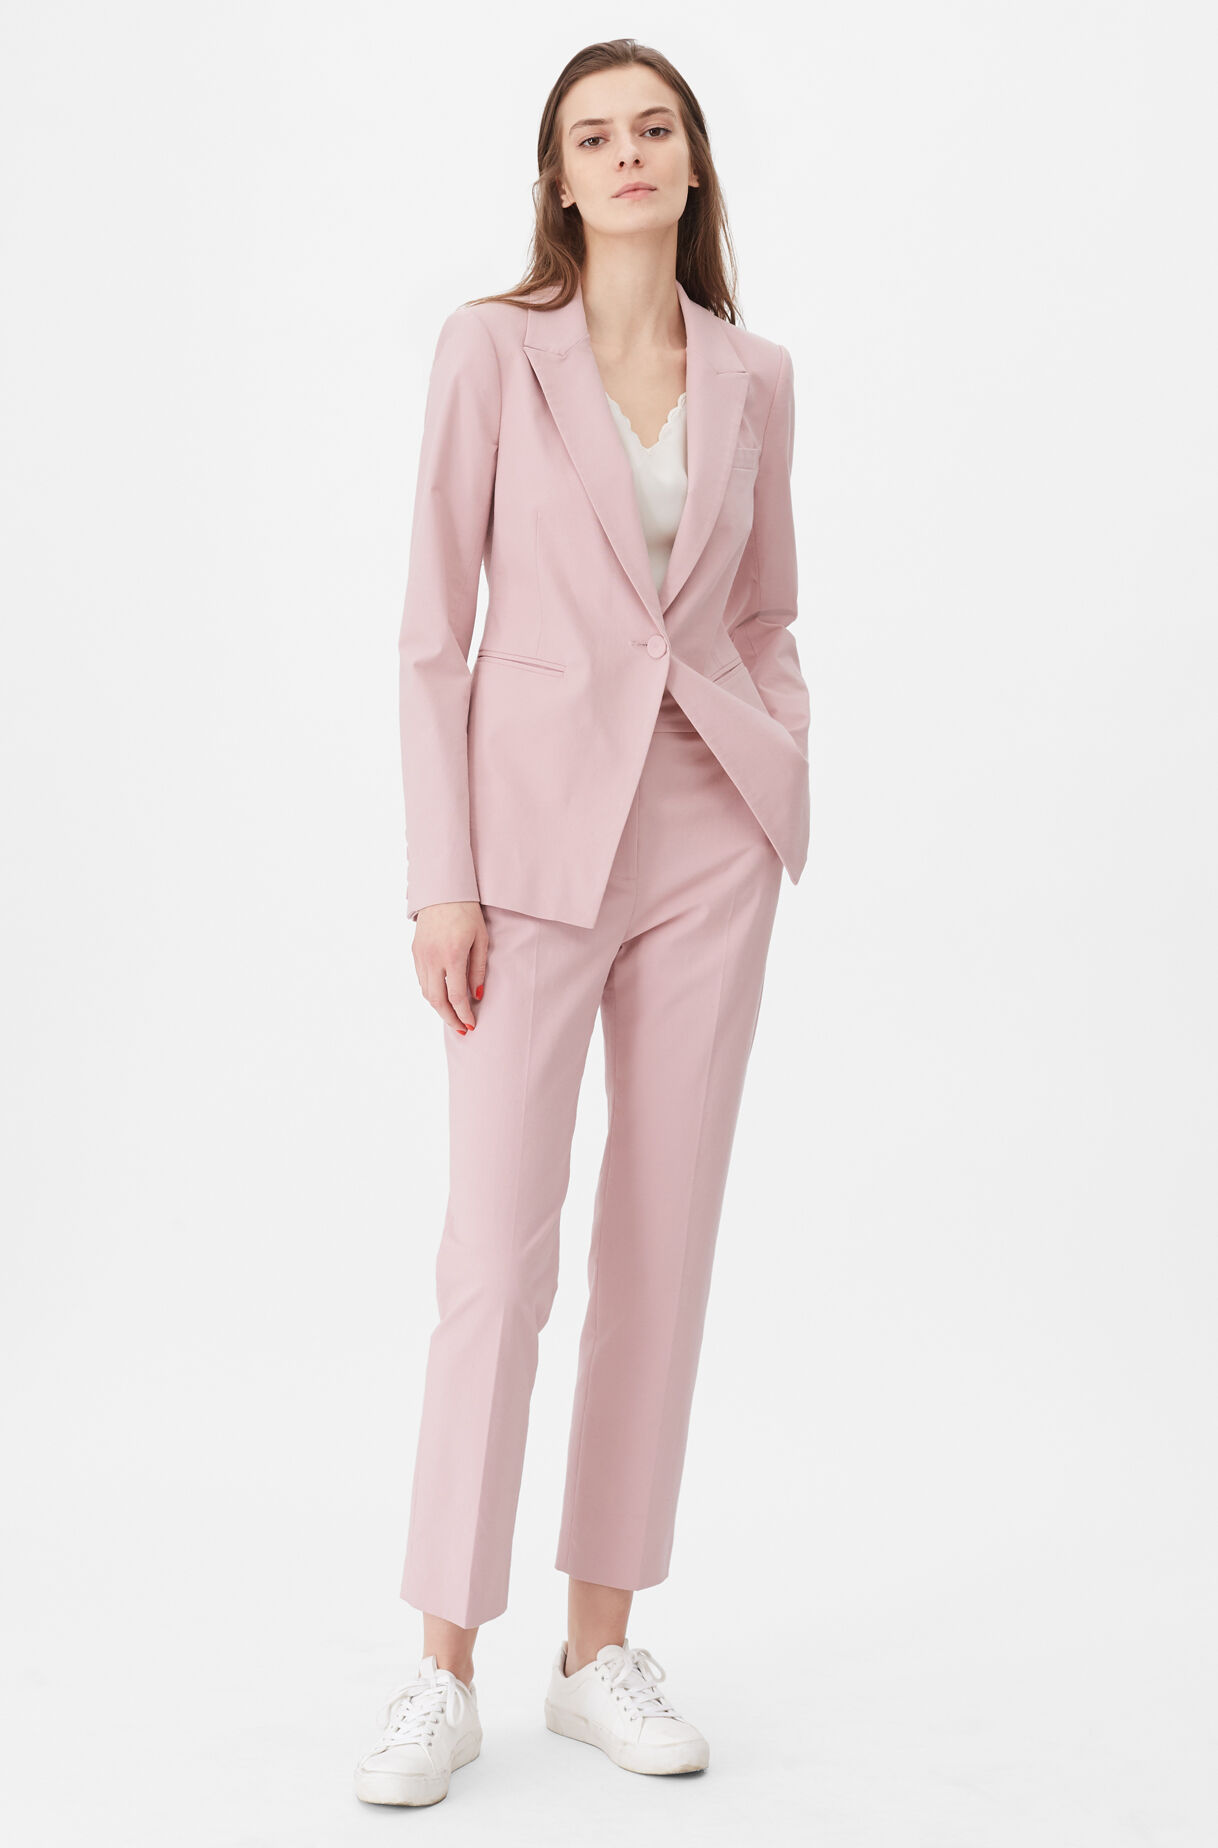 Tailored Stretch Modern Suiting Jacket, , large